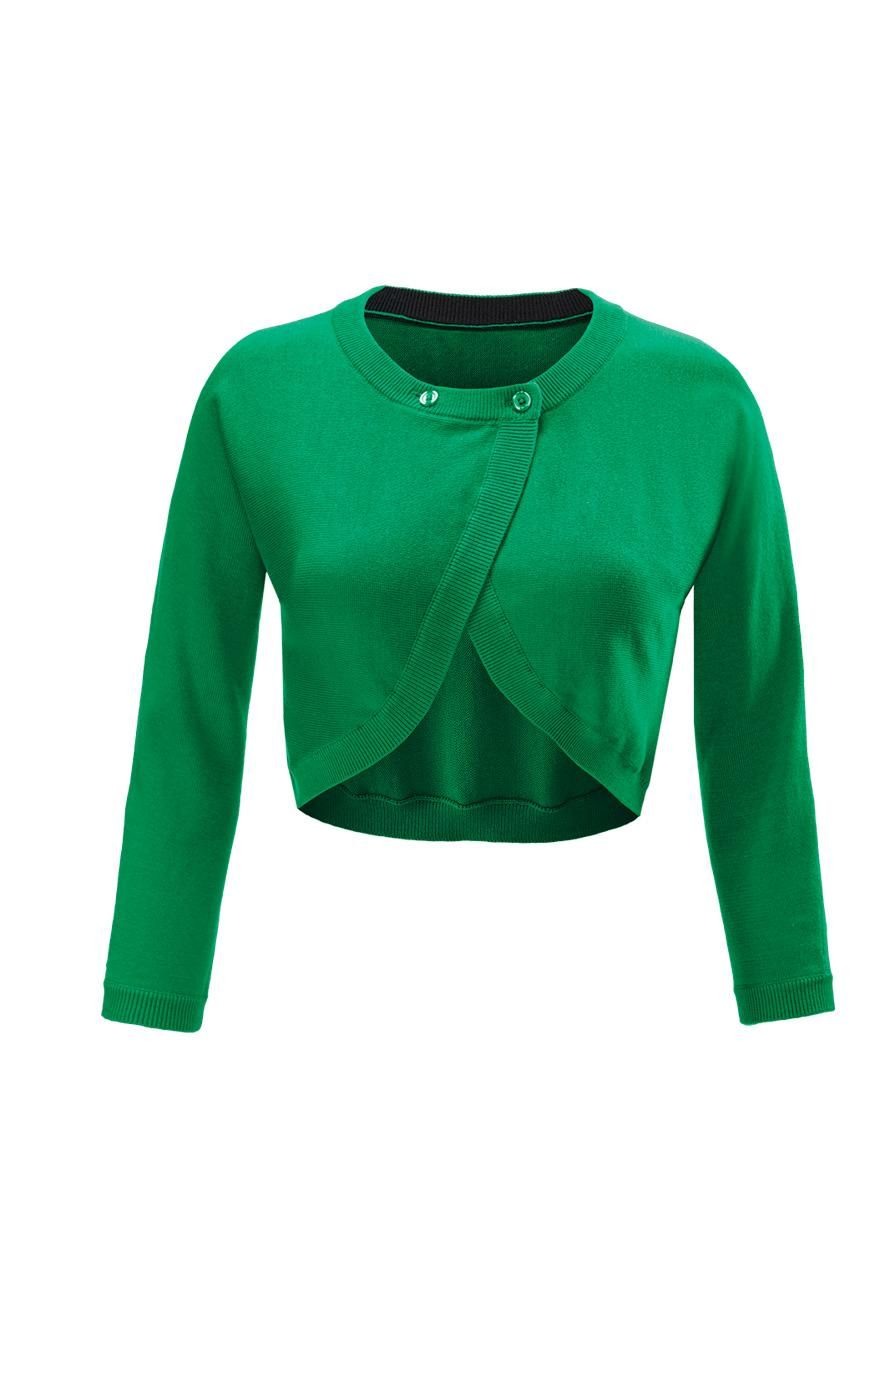 Discover cabi's Piccolo Shrug, a sweet cropped sweater featuring a ...